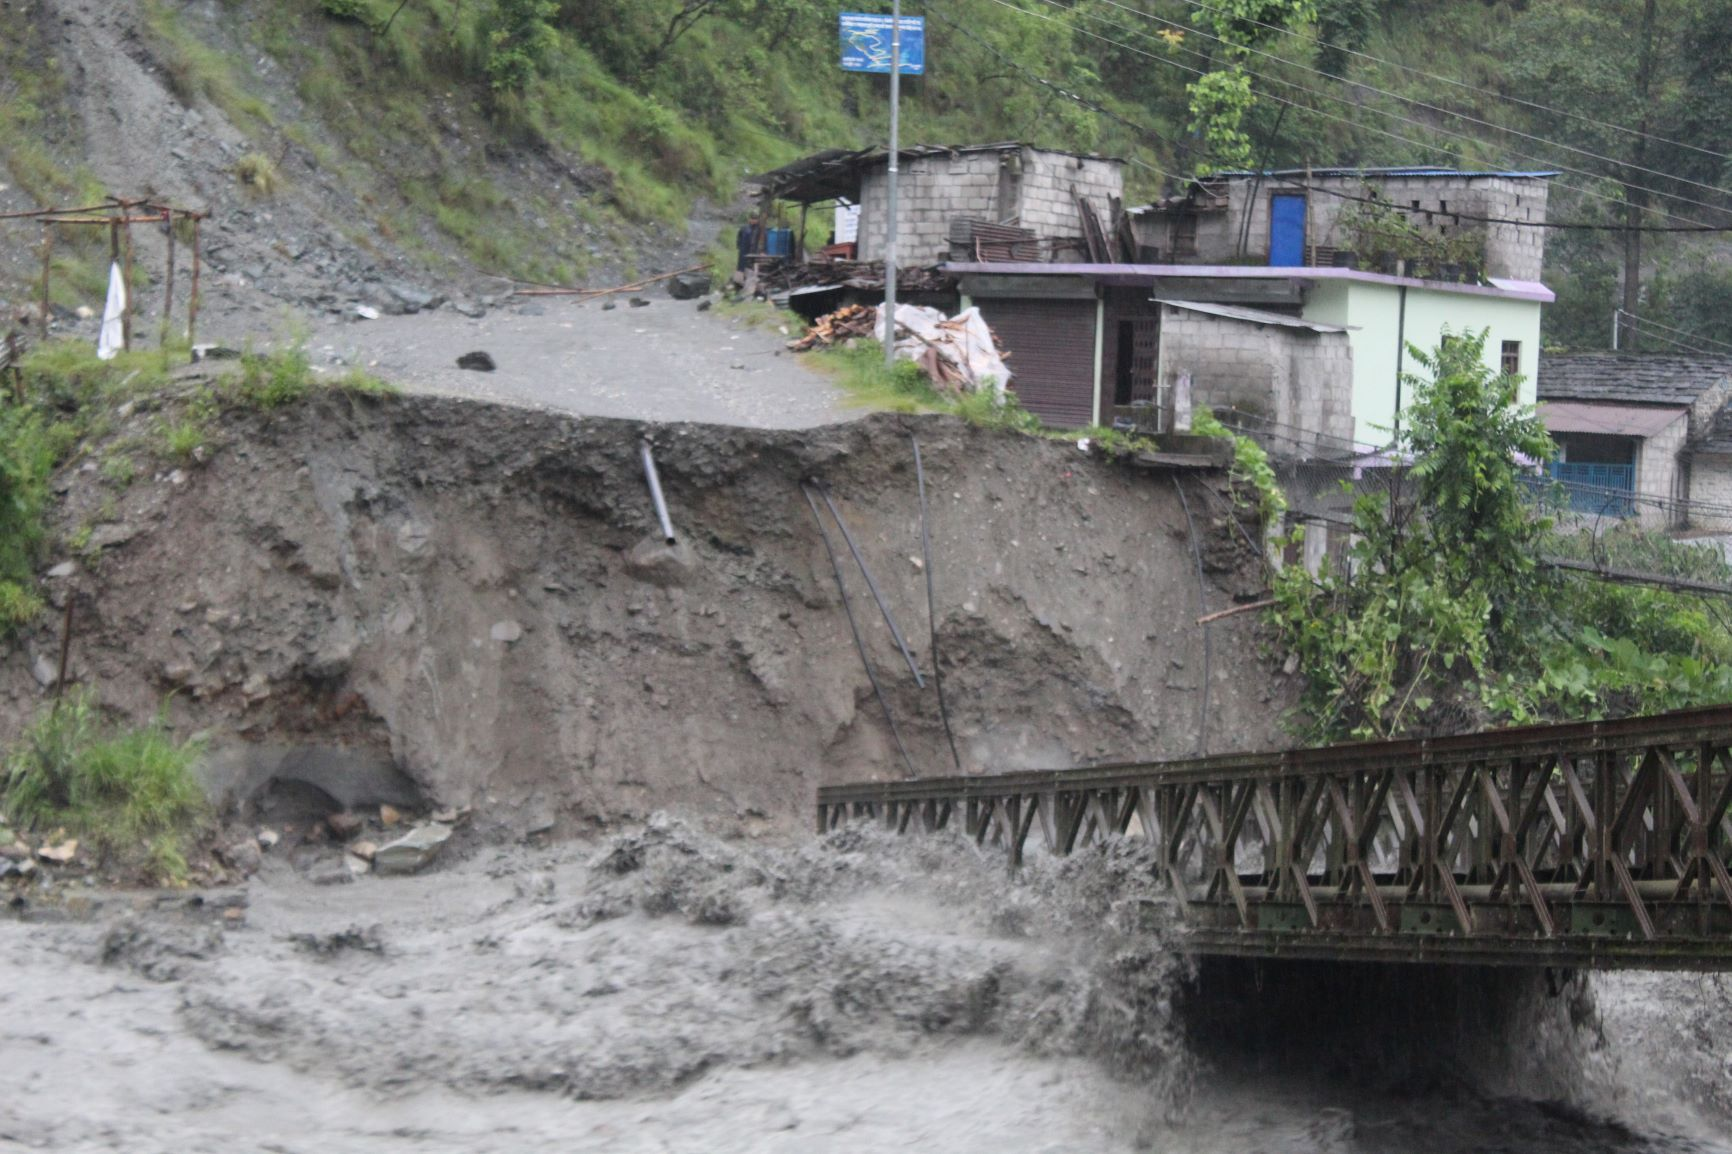 FILE - This image shows the destroyed motorable bridge over Raghuganga river, in Myagdi, as seen on Friday, July 10, 2020. Photo: Bharat Koirala/ THT